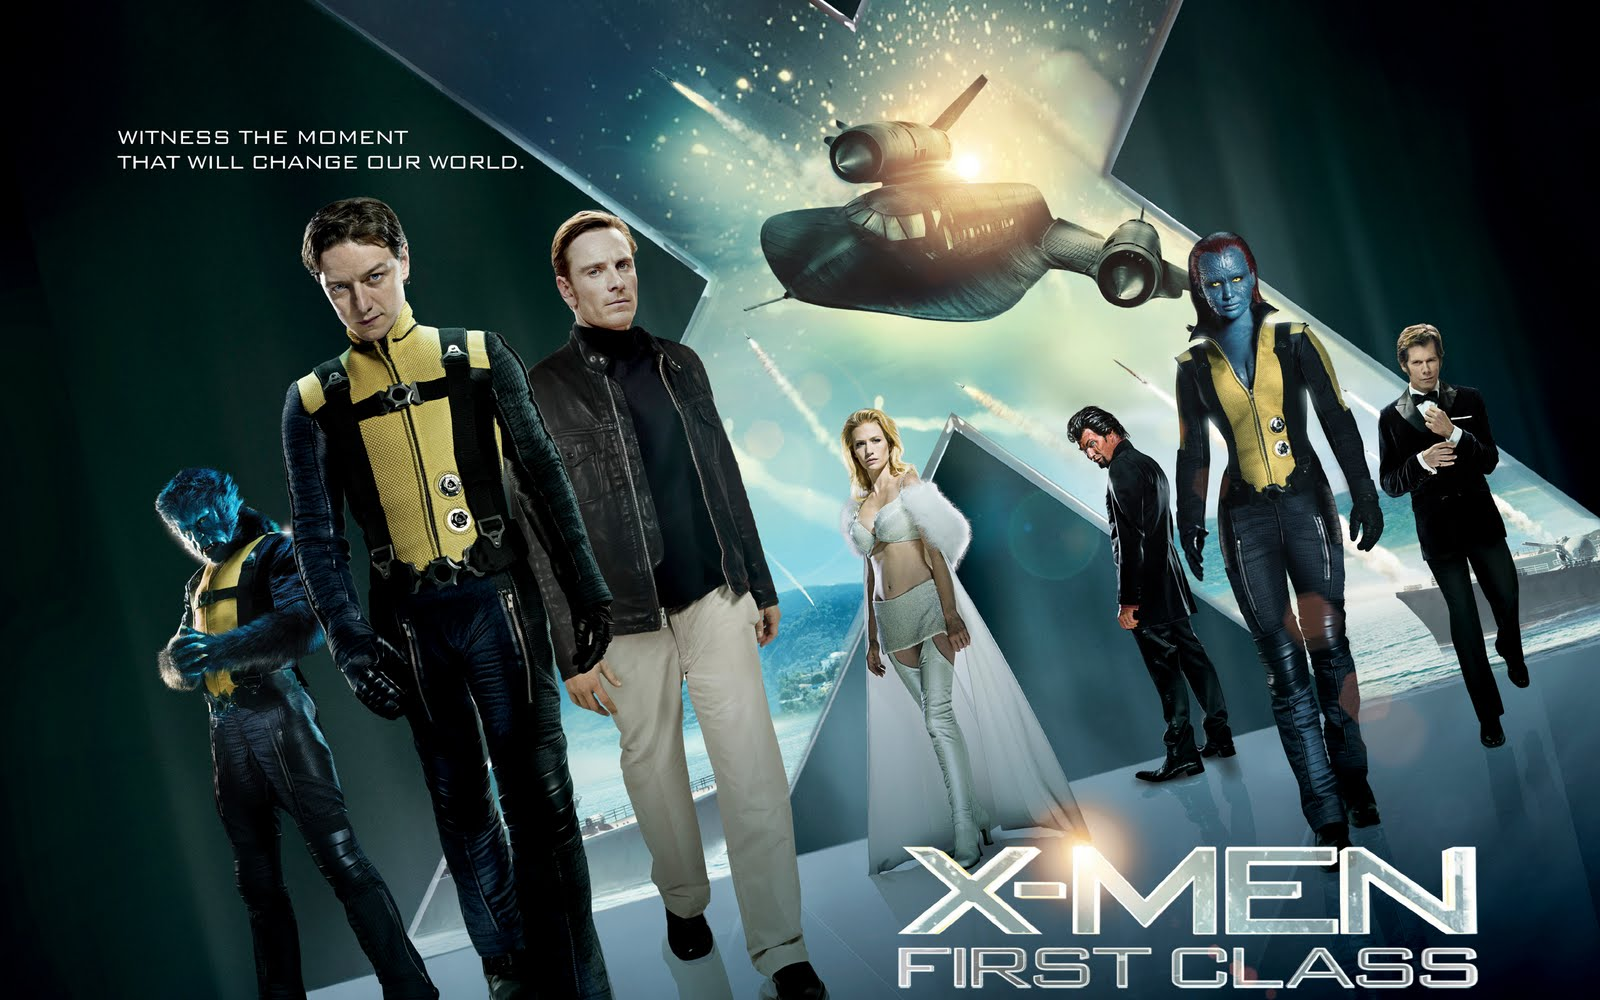 Movie Posters 2011: My Film Journal: X-Men: First Class